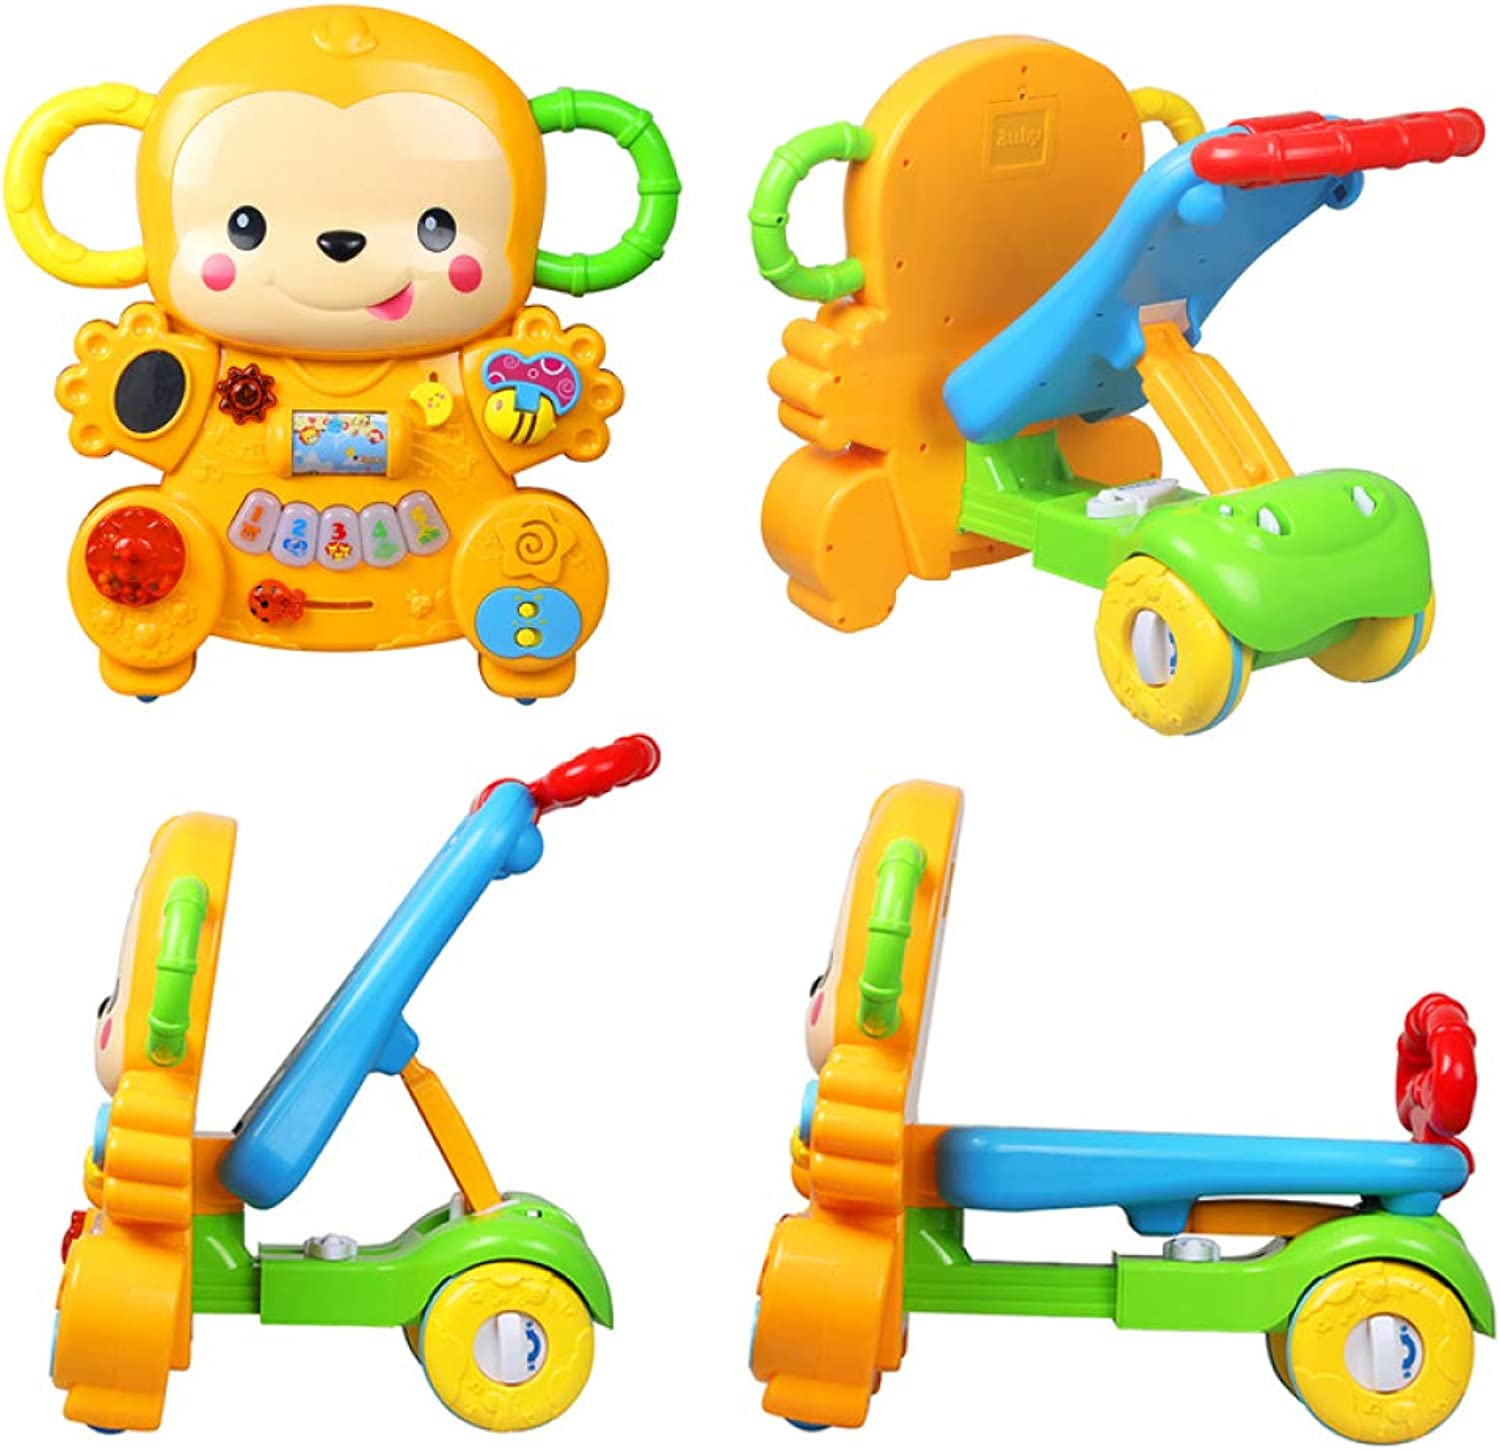 Baby First Steps Walker Multifunction Trolley Early Learning Puzzle 7-18 Months Driving Toys 2 In1 Baby Walker And Push Power Ride,Yellow